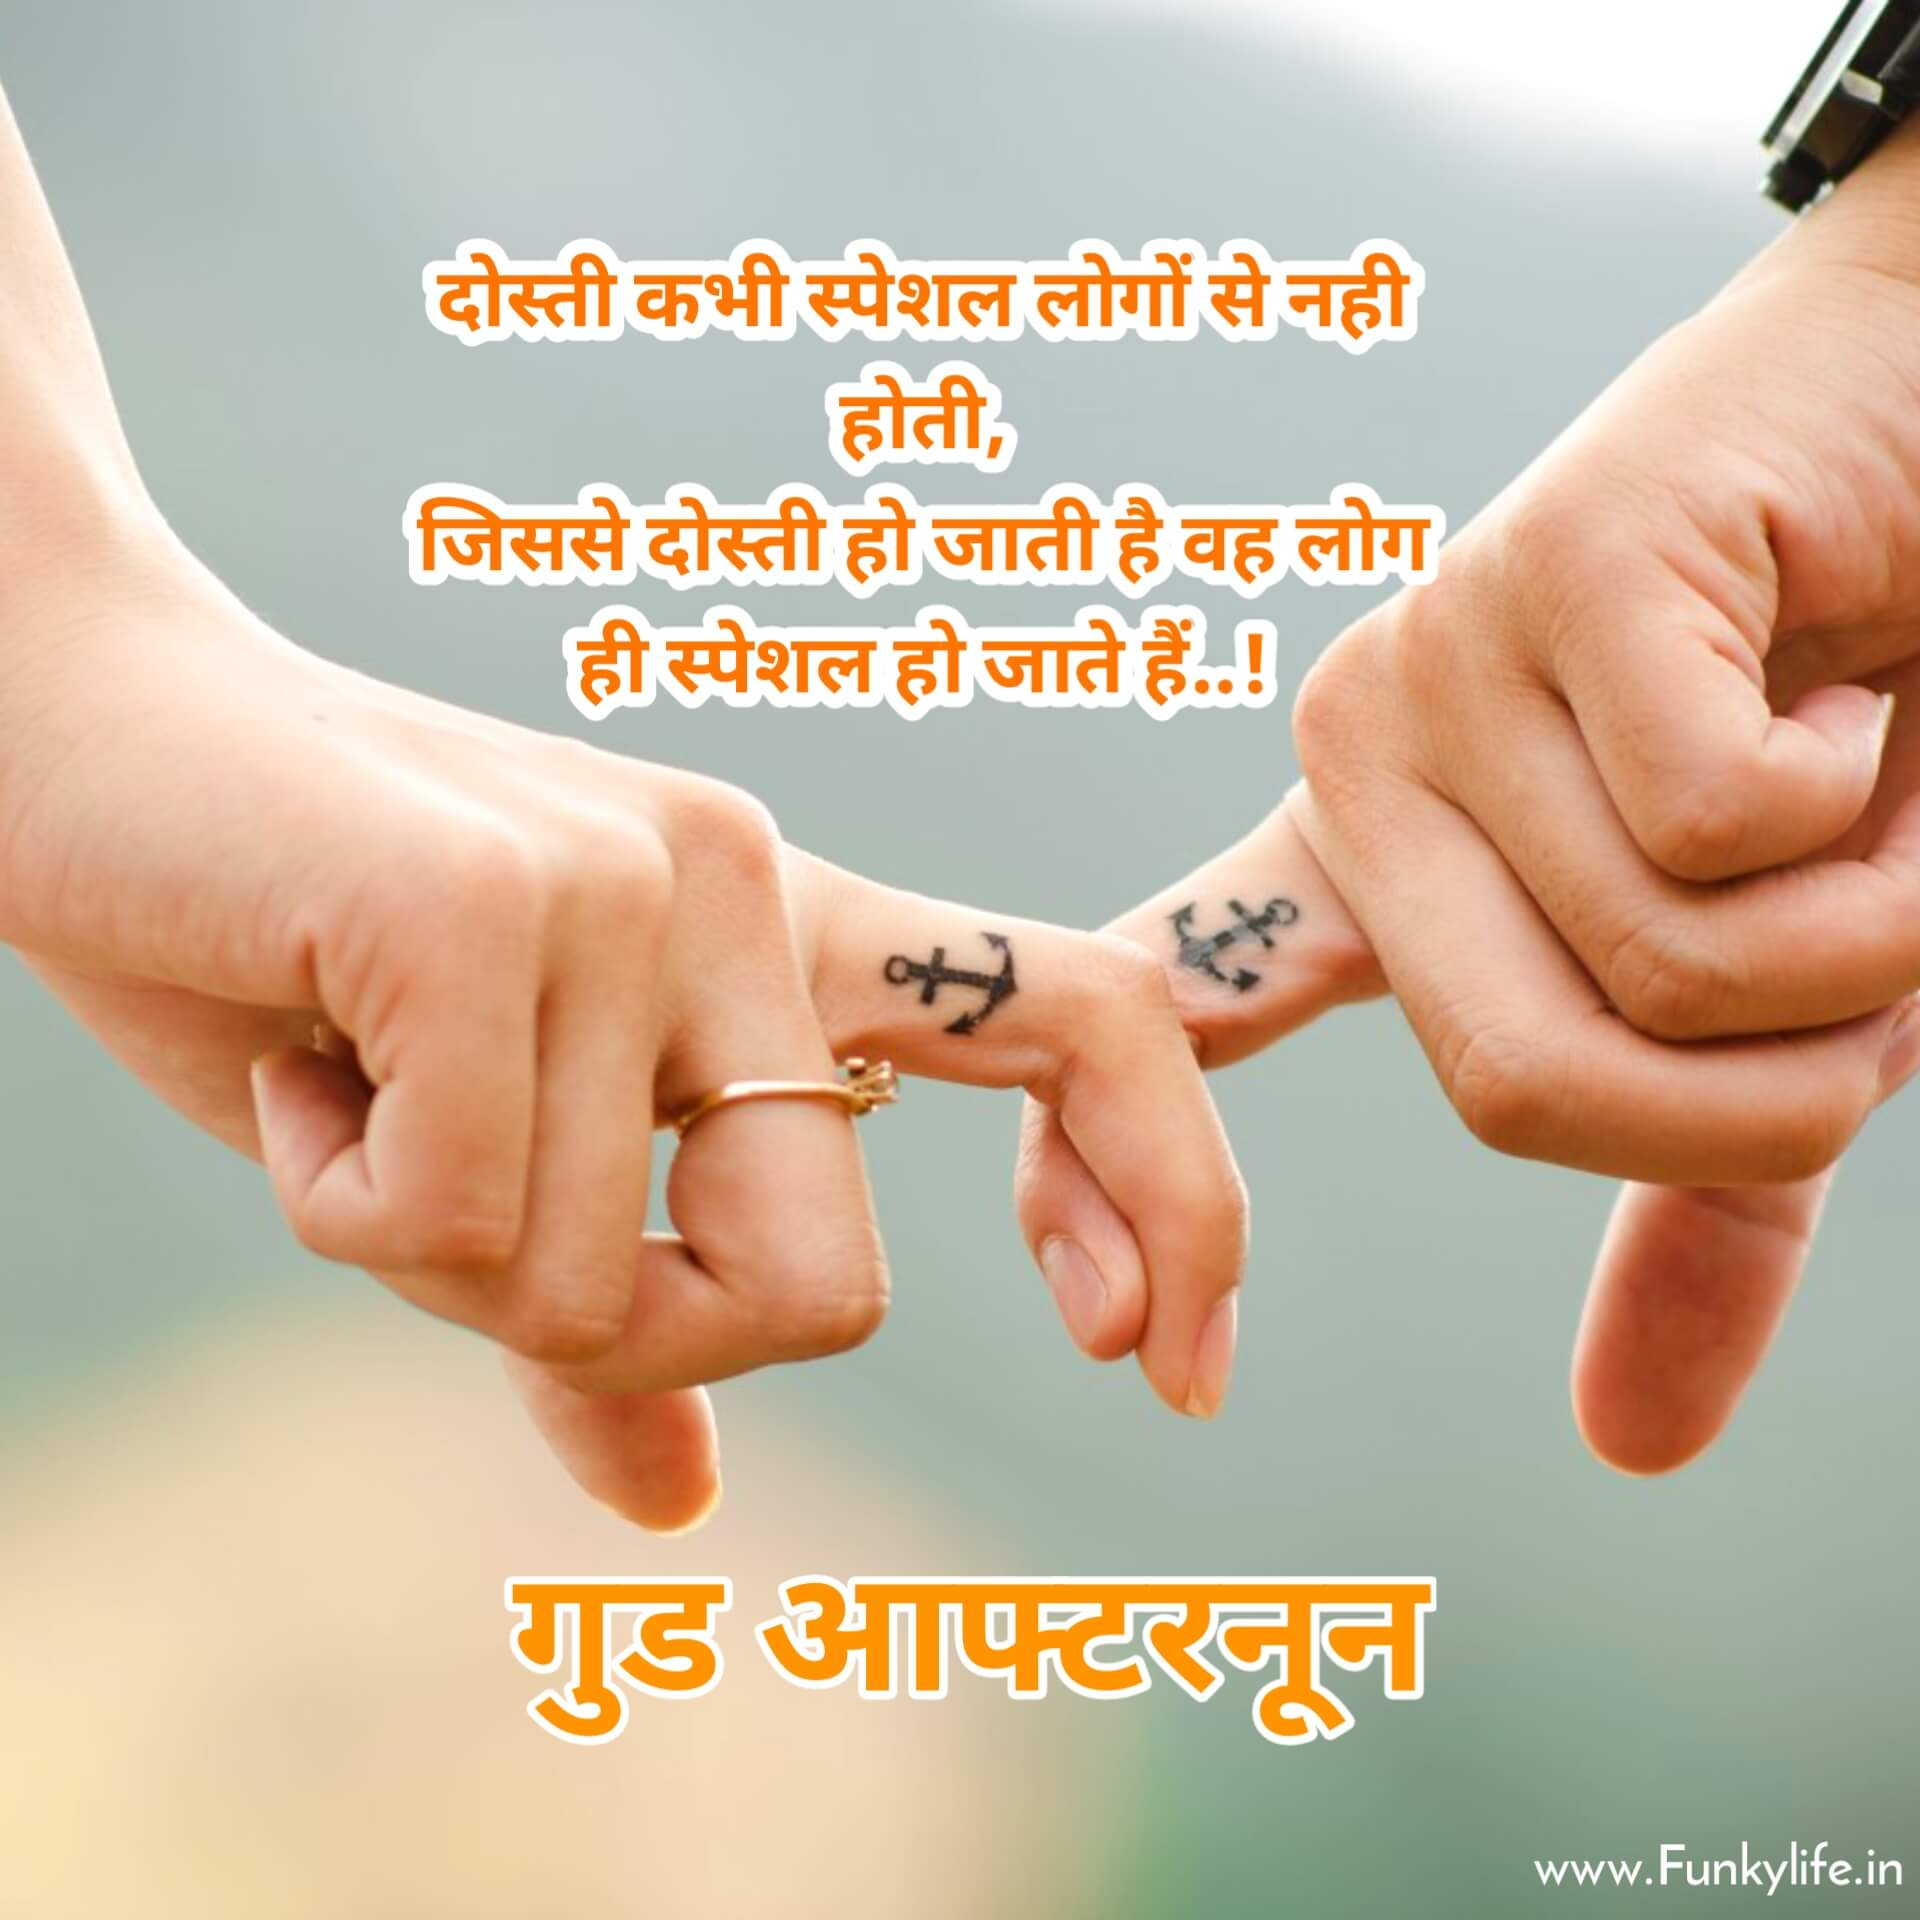 Dosti Good Afternoon Image with Quotes in Hindi